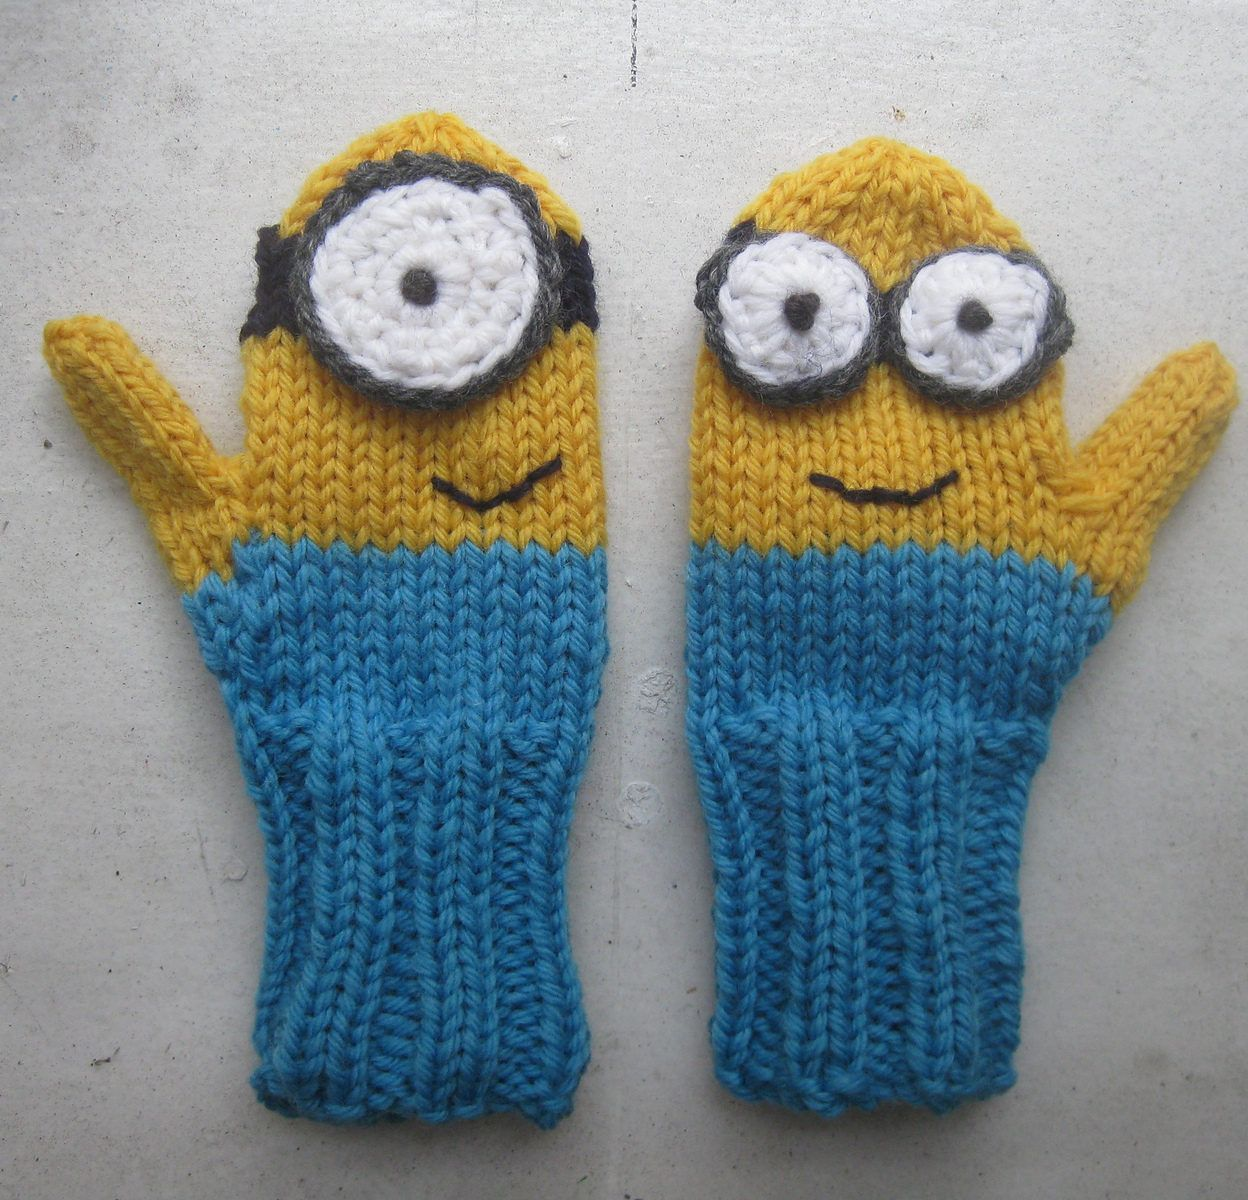 Free Knitting Pattern for Minion Mittens | Knitting projects ...